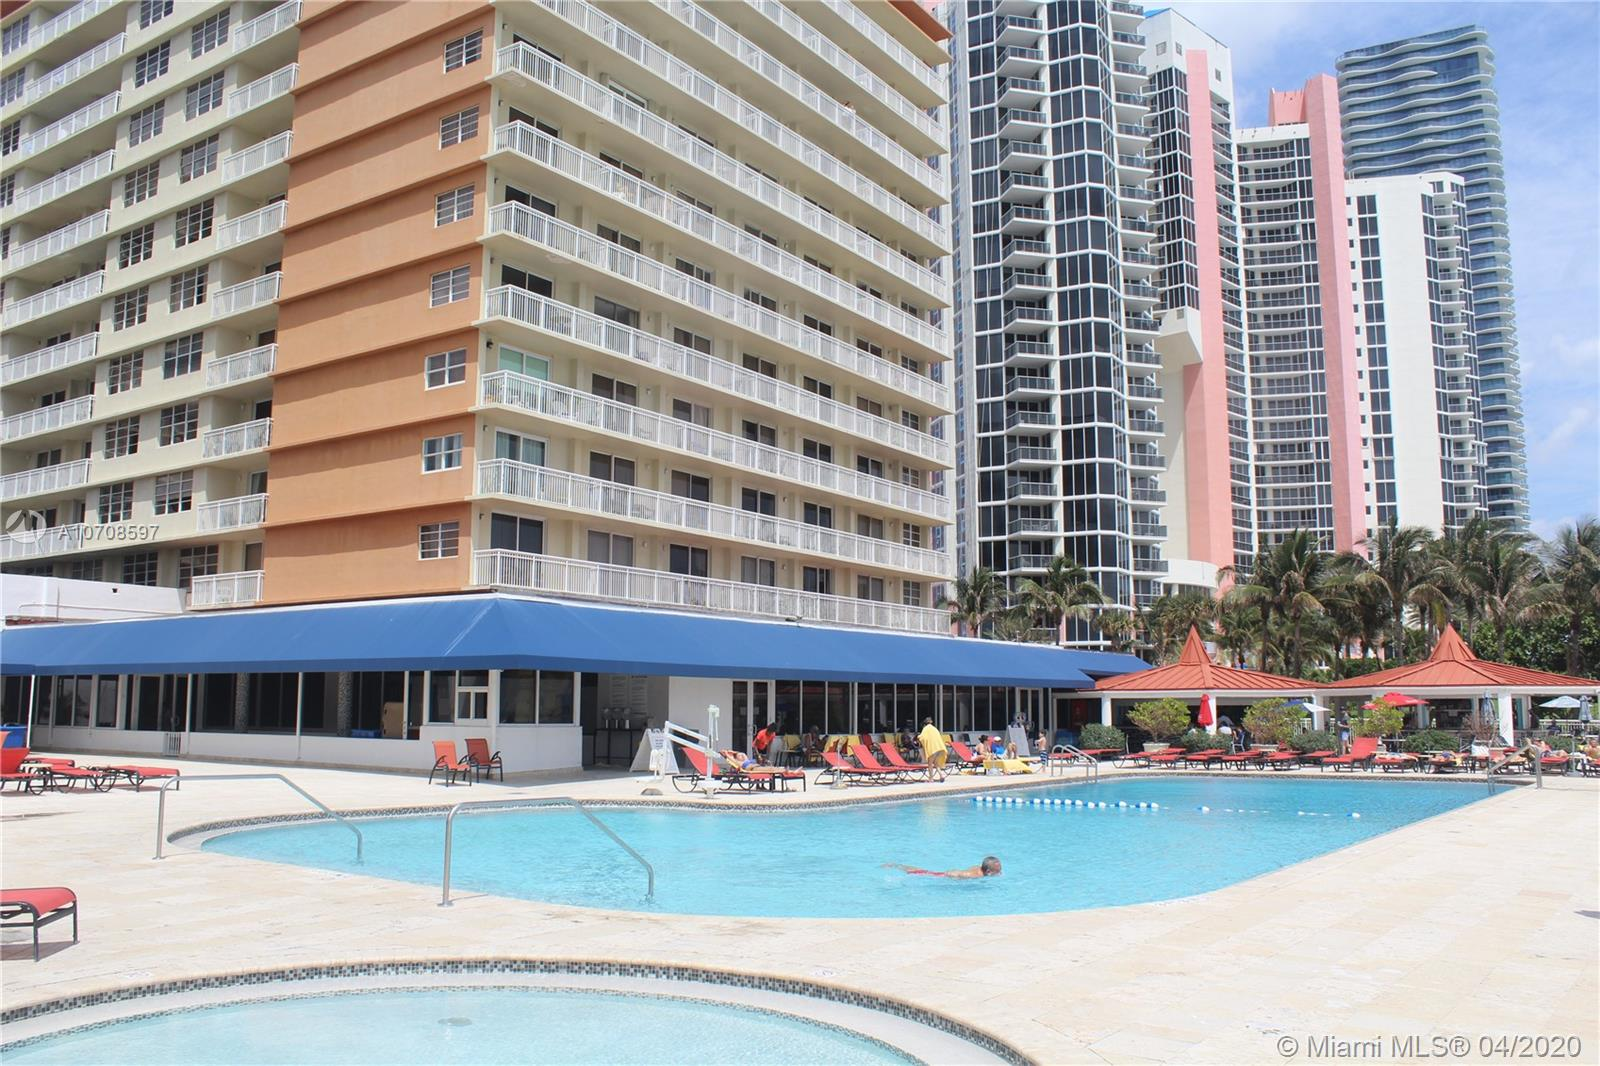 19201 Collins Ave # 912, Sunny Isles Beach, Florida 33160, ,1 BathroomBathrooms,Residential Lease,For Rent,19201 Collins Ave # 912,A10708597